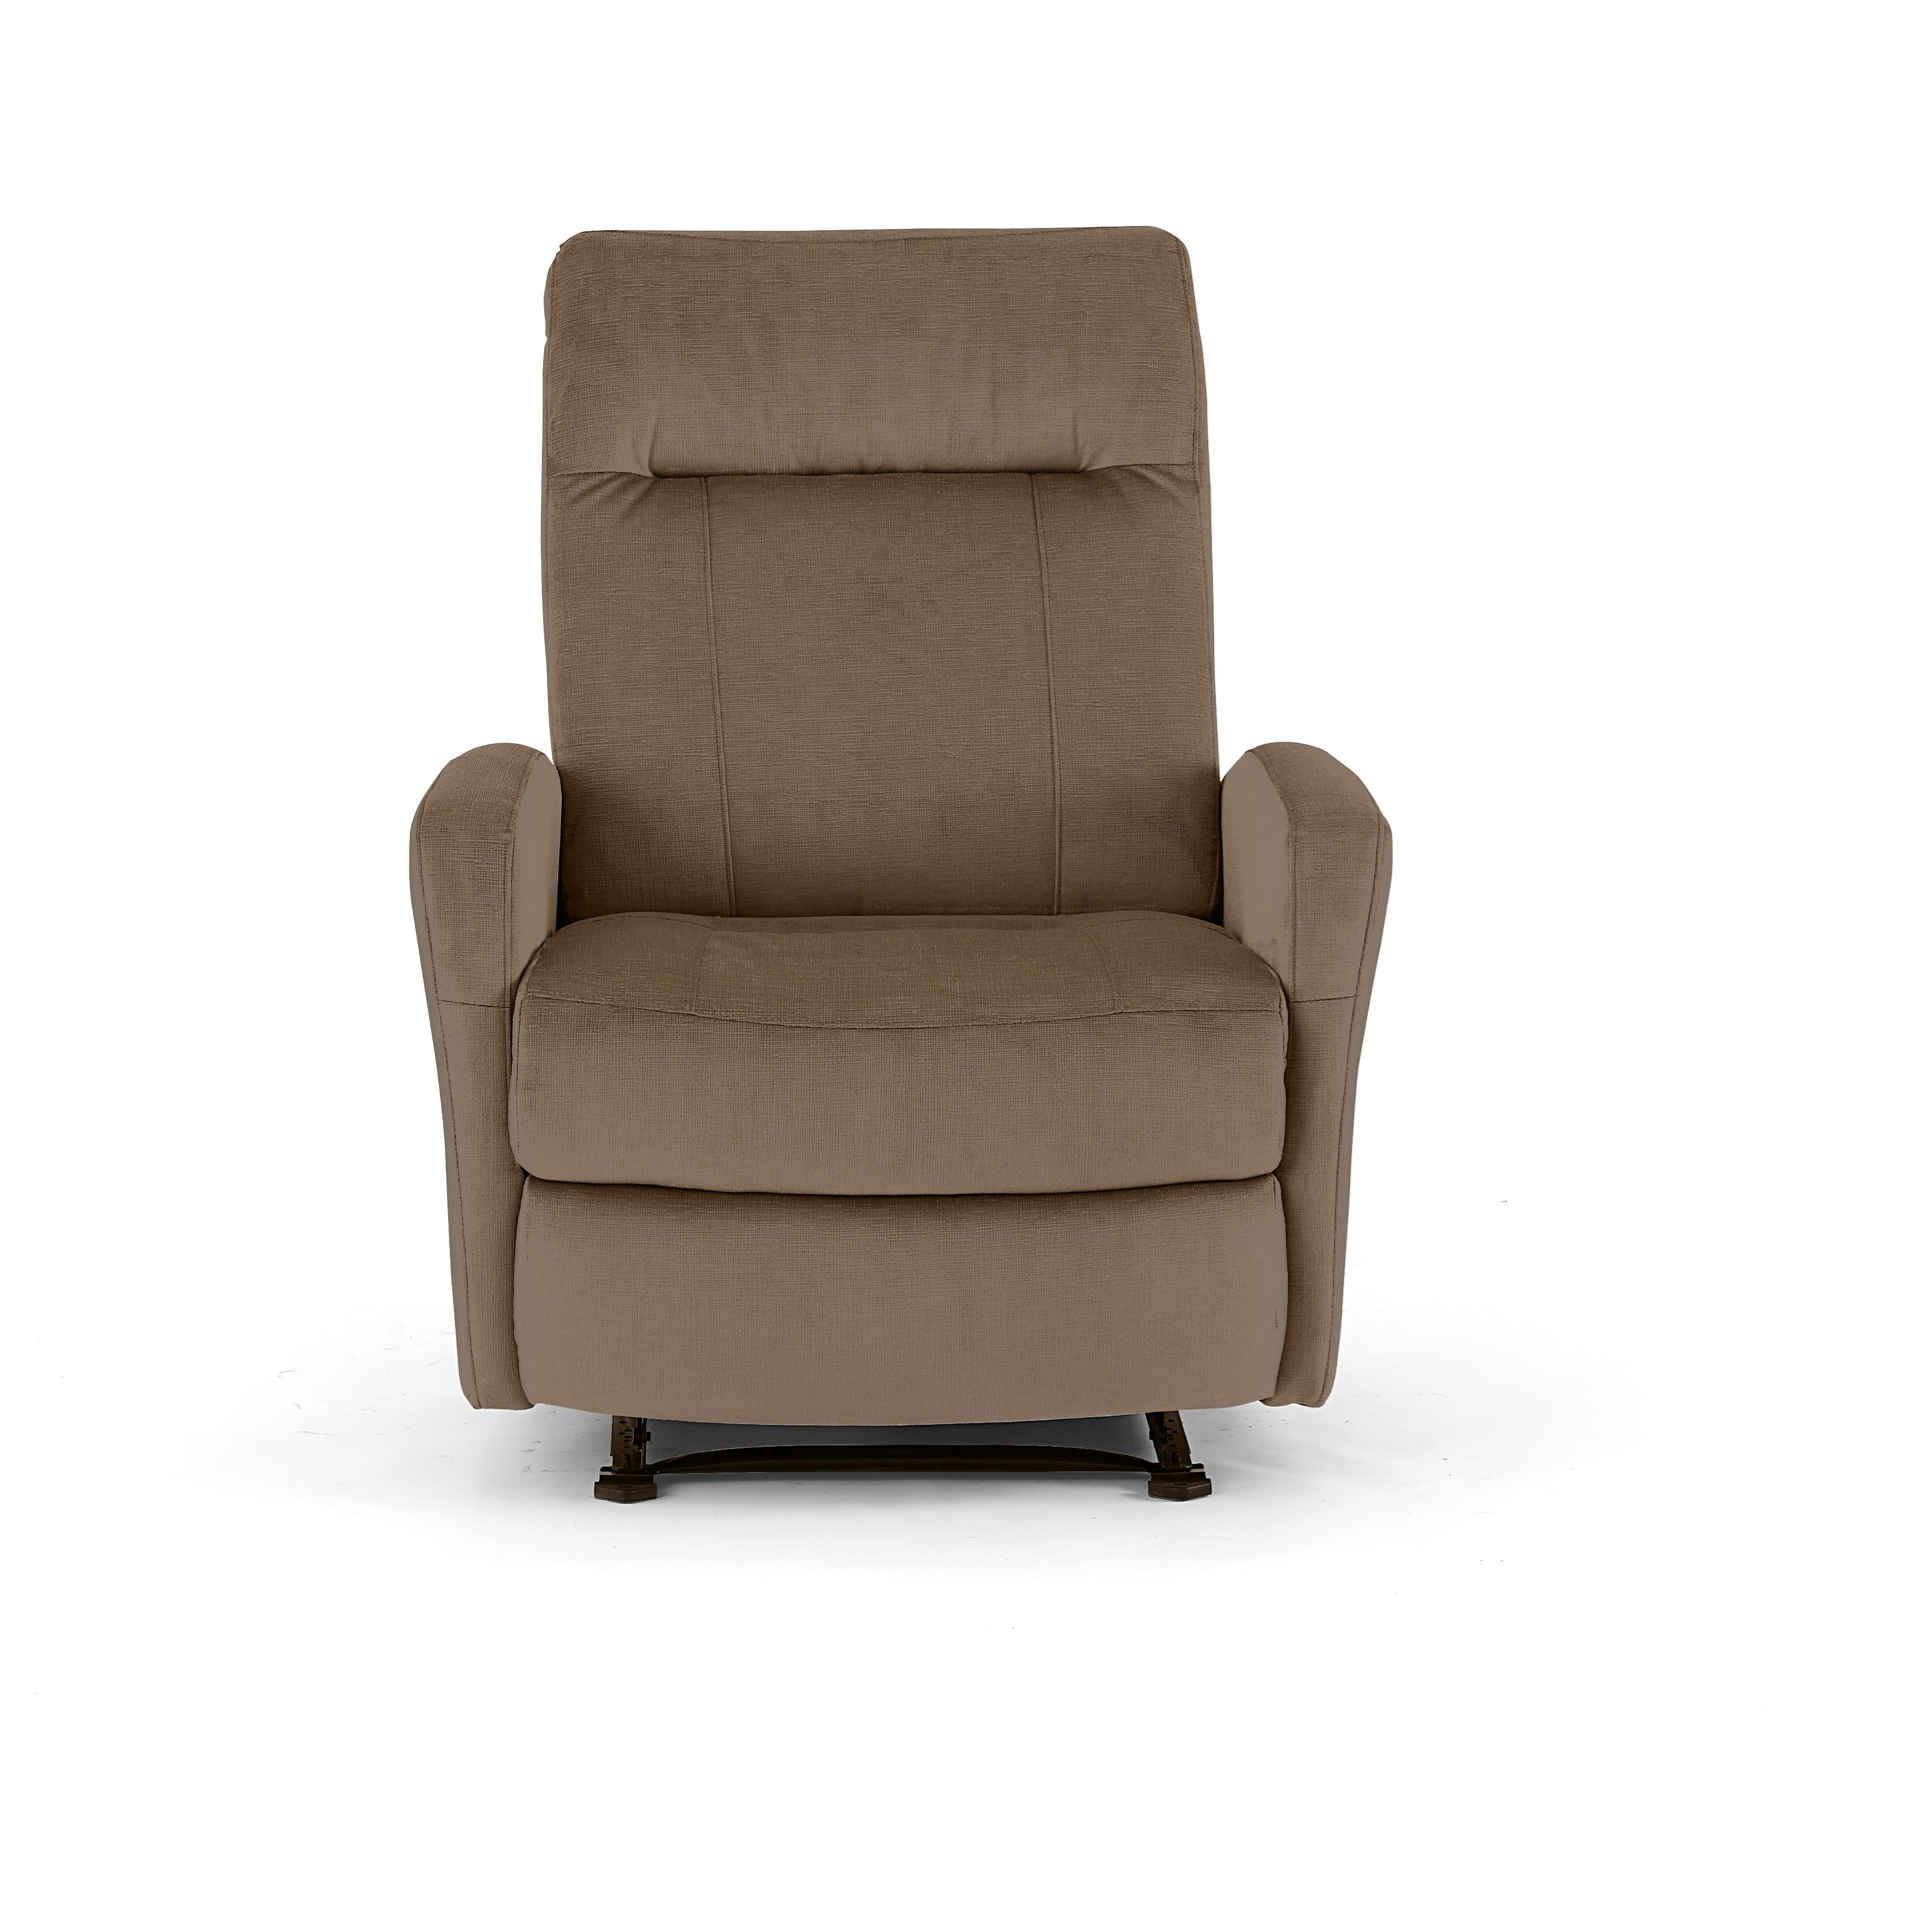 Best Home Furnishings Costilla 2A34 Space Saver Recliner